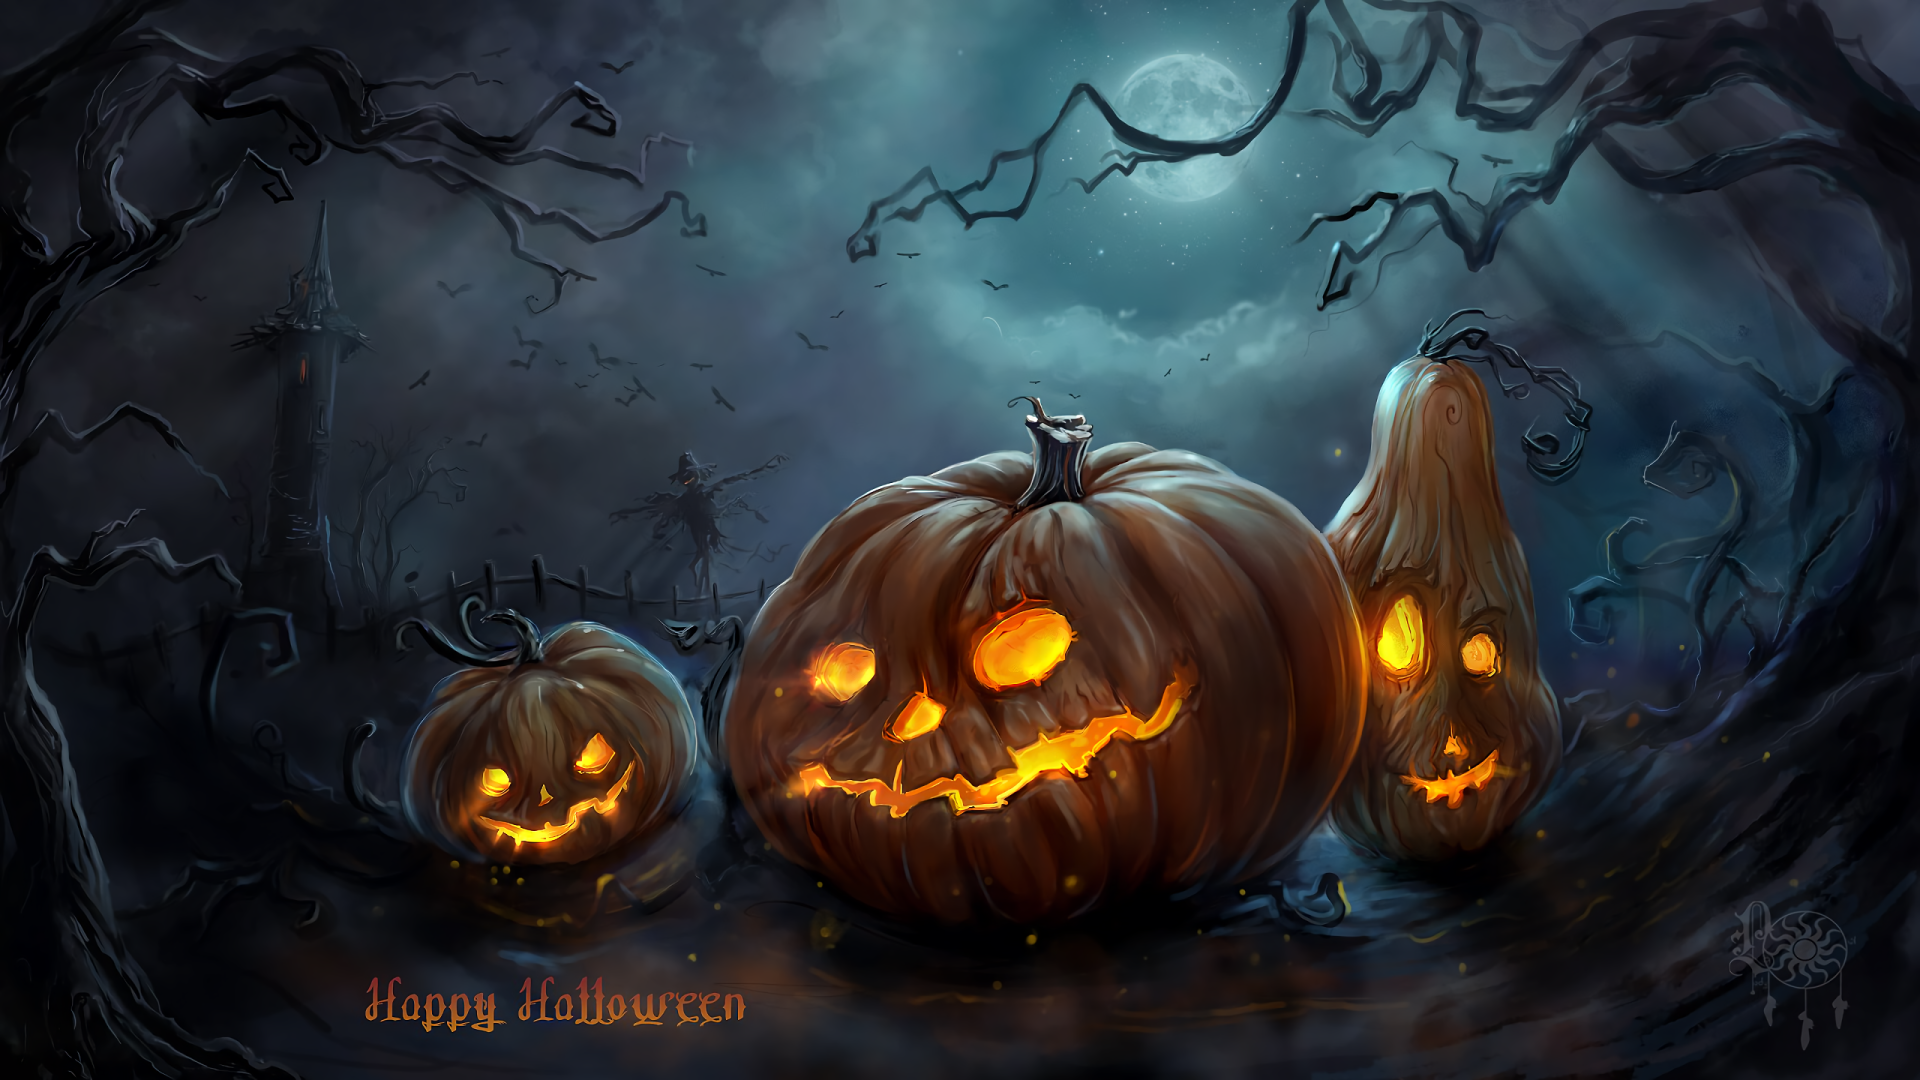 2560x1440 Halloween Wallpaper Background Image View Download